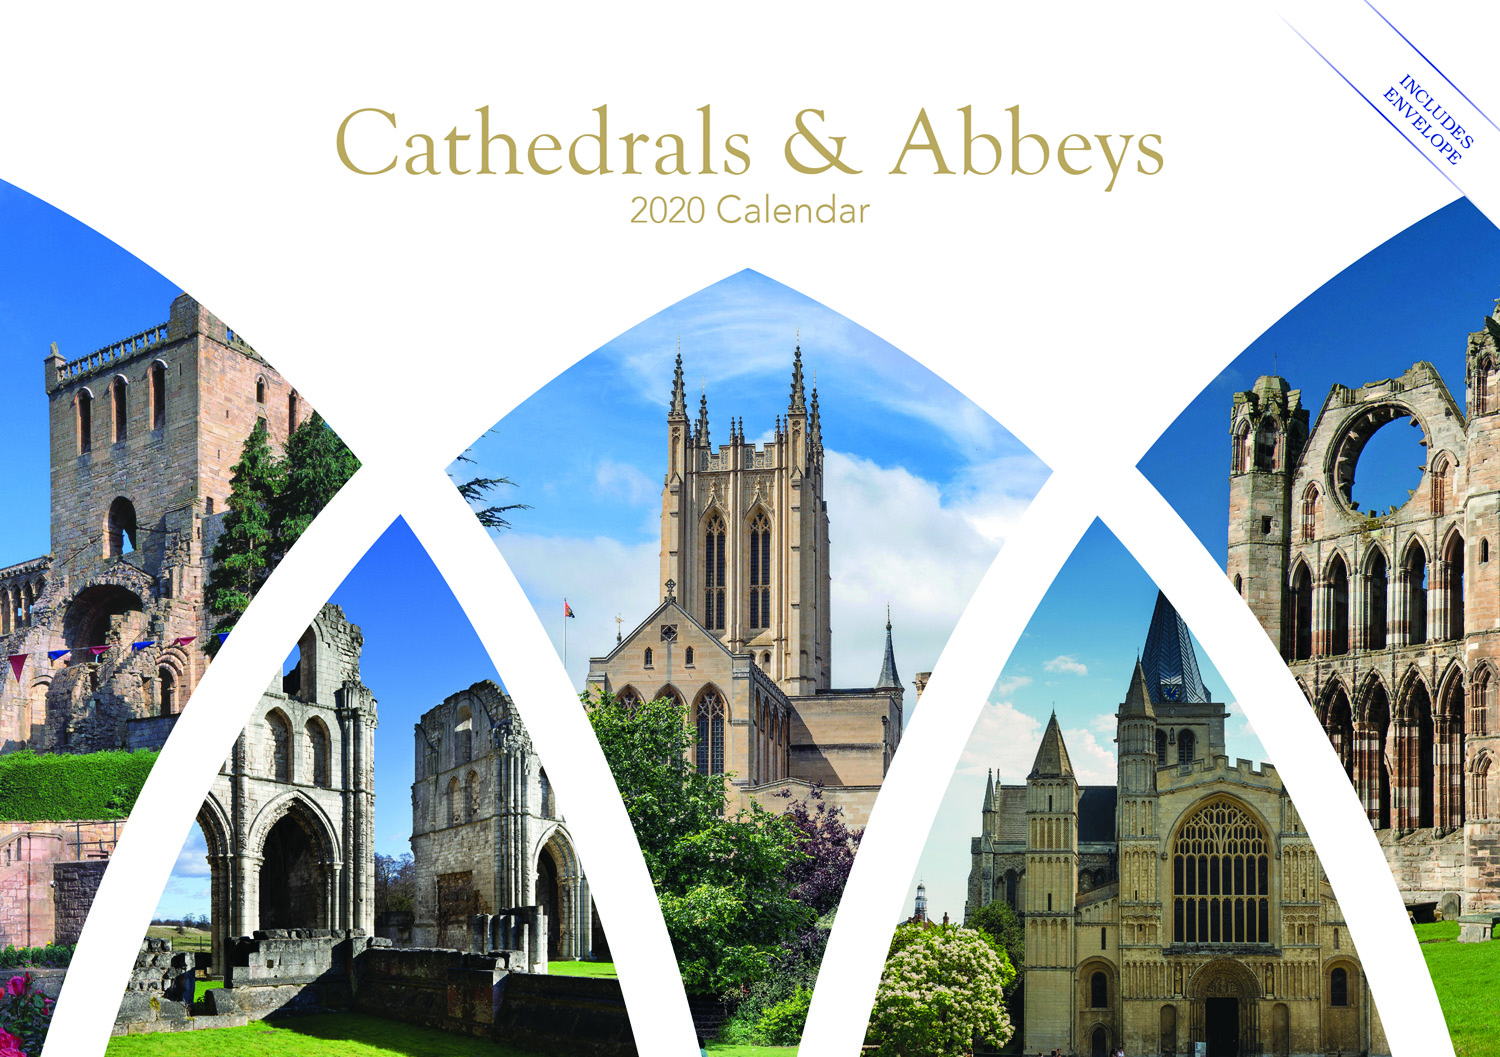 Cathedrals And Abbeys A5 2020 Calendar